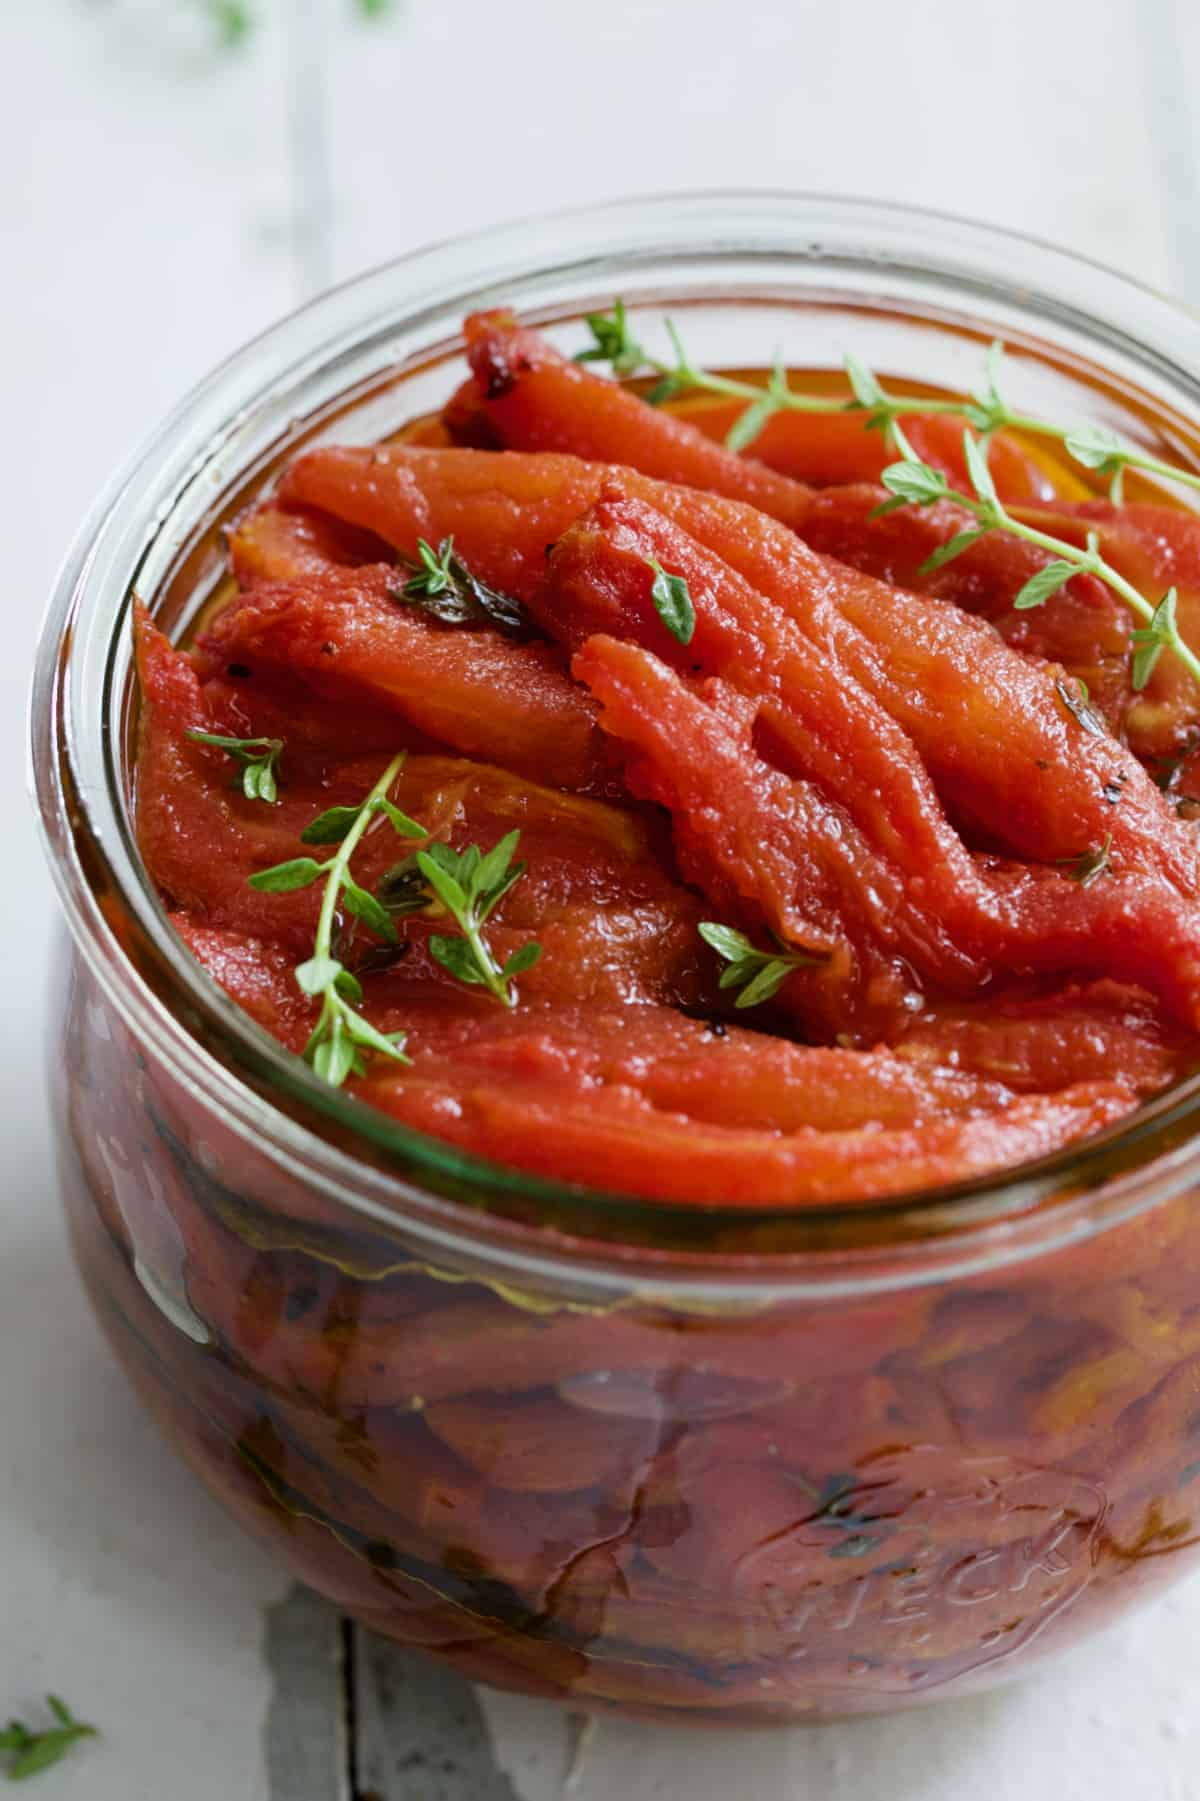 Tomato Confit in glass jar with thyme sprigs.